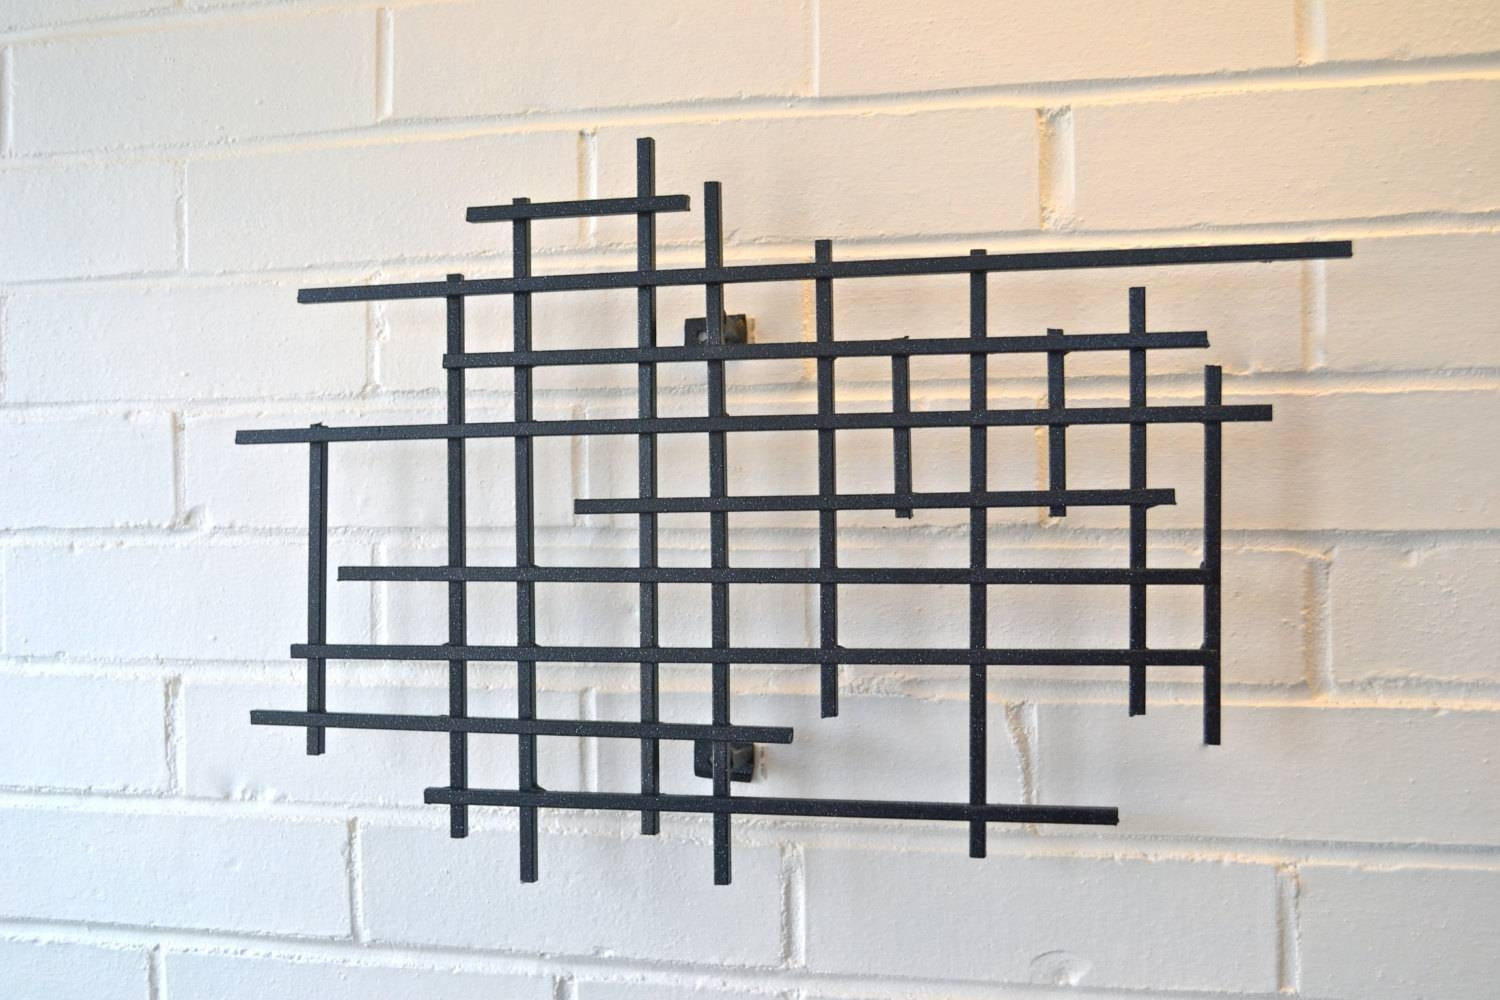 Small Square Metal Art Sculpture Modern Steel Decor Decoration 3D Pertaining To Most Recent Small Metal Wall Art (View 20 of 20)